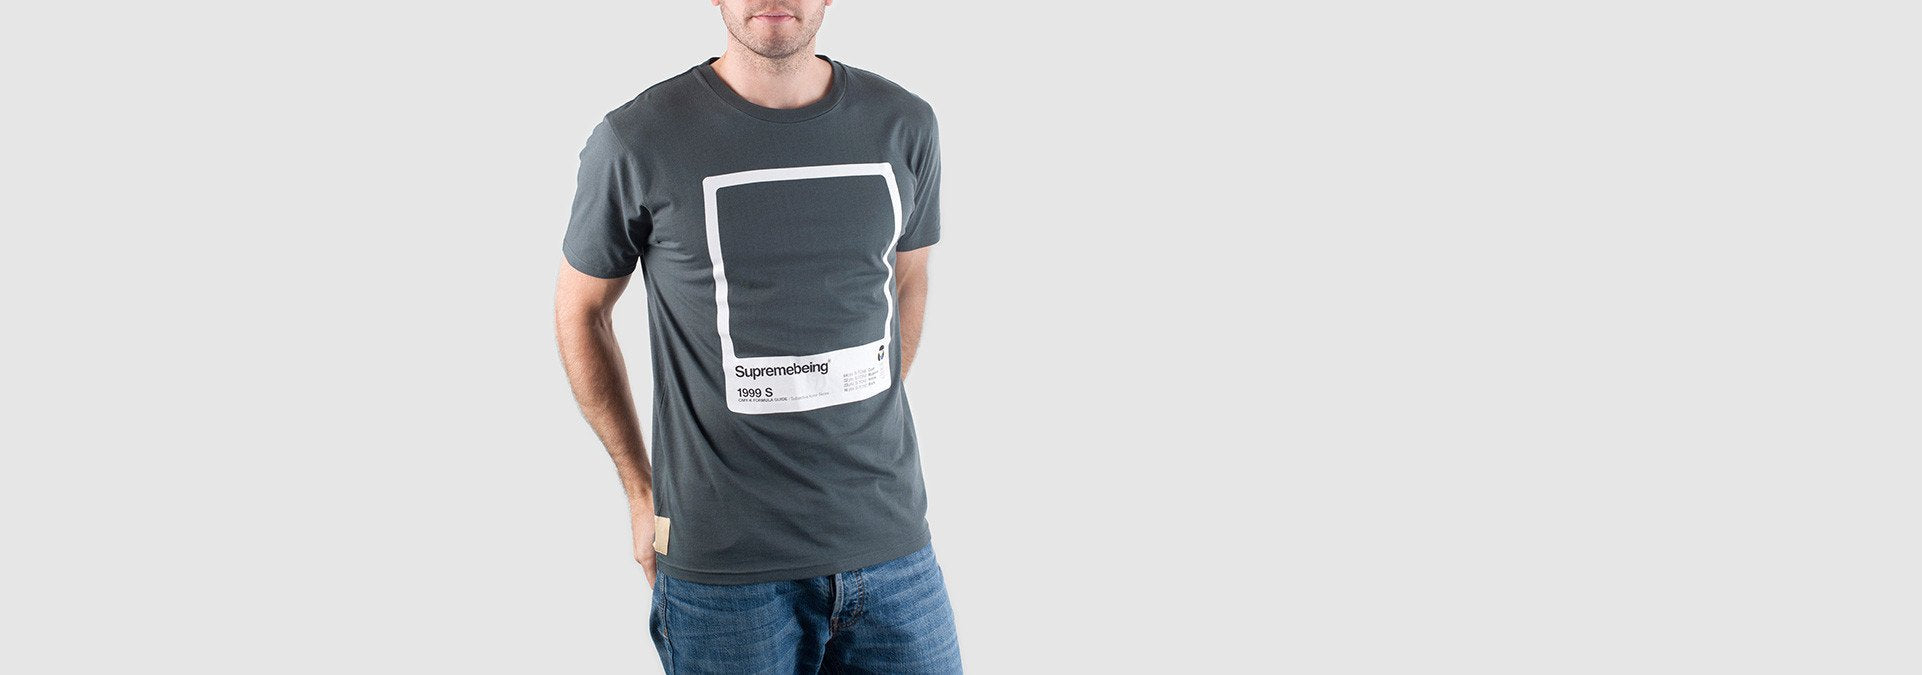 CMYK Swatch T-Shirt Grey